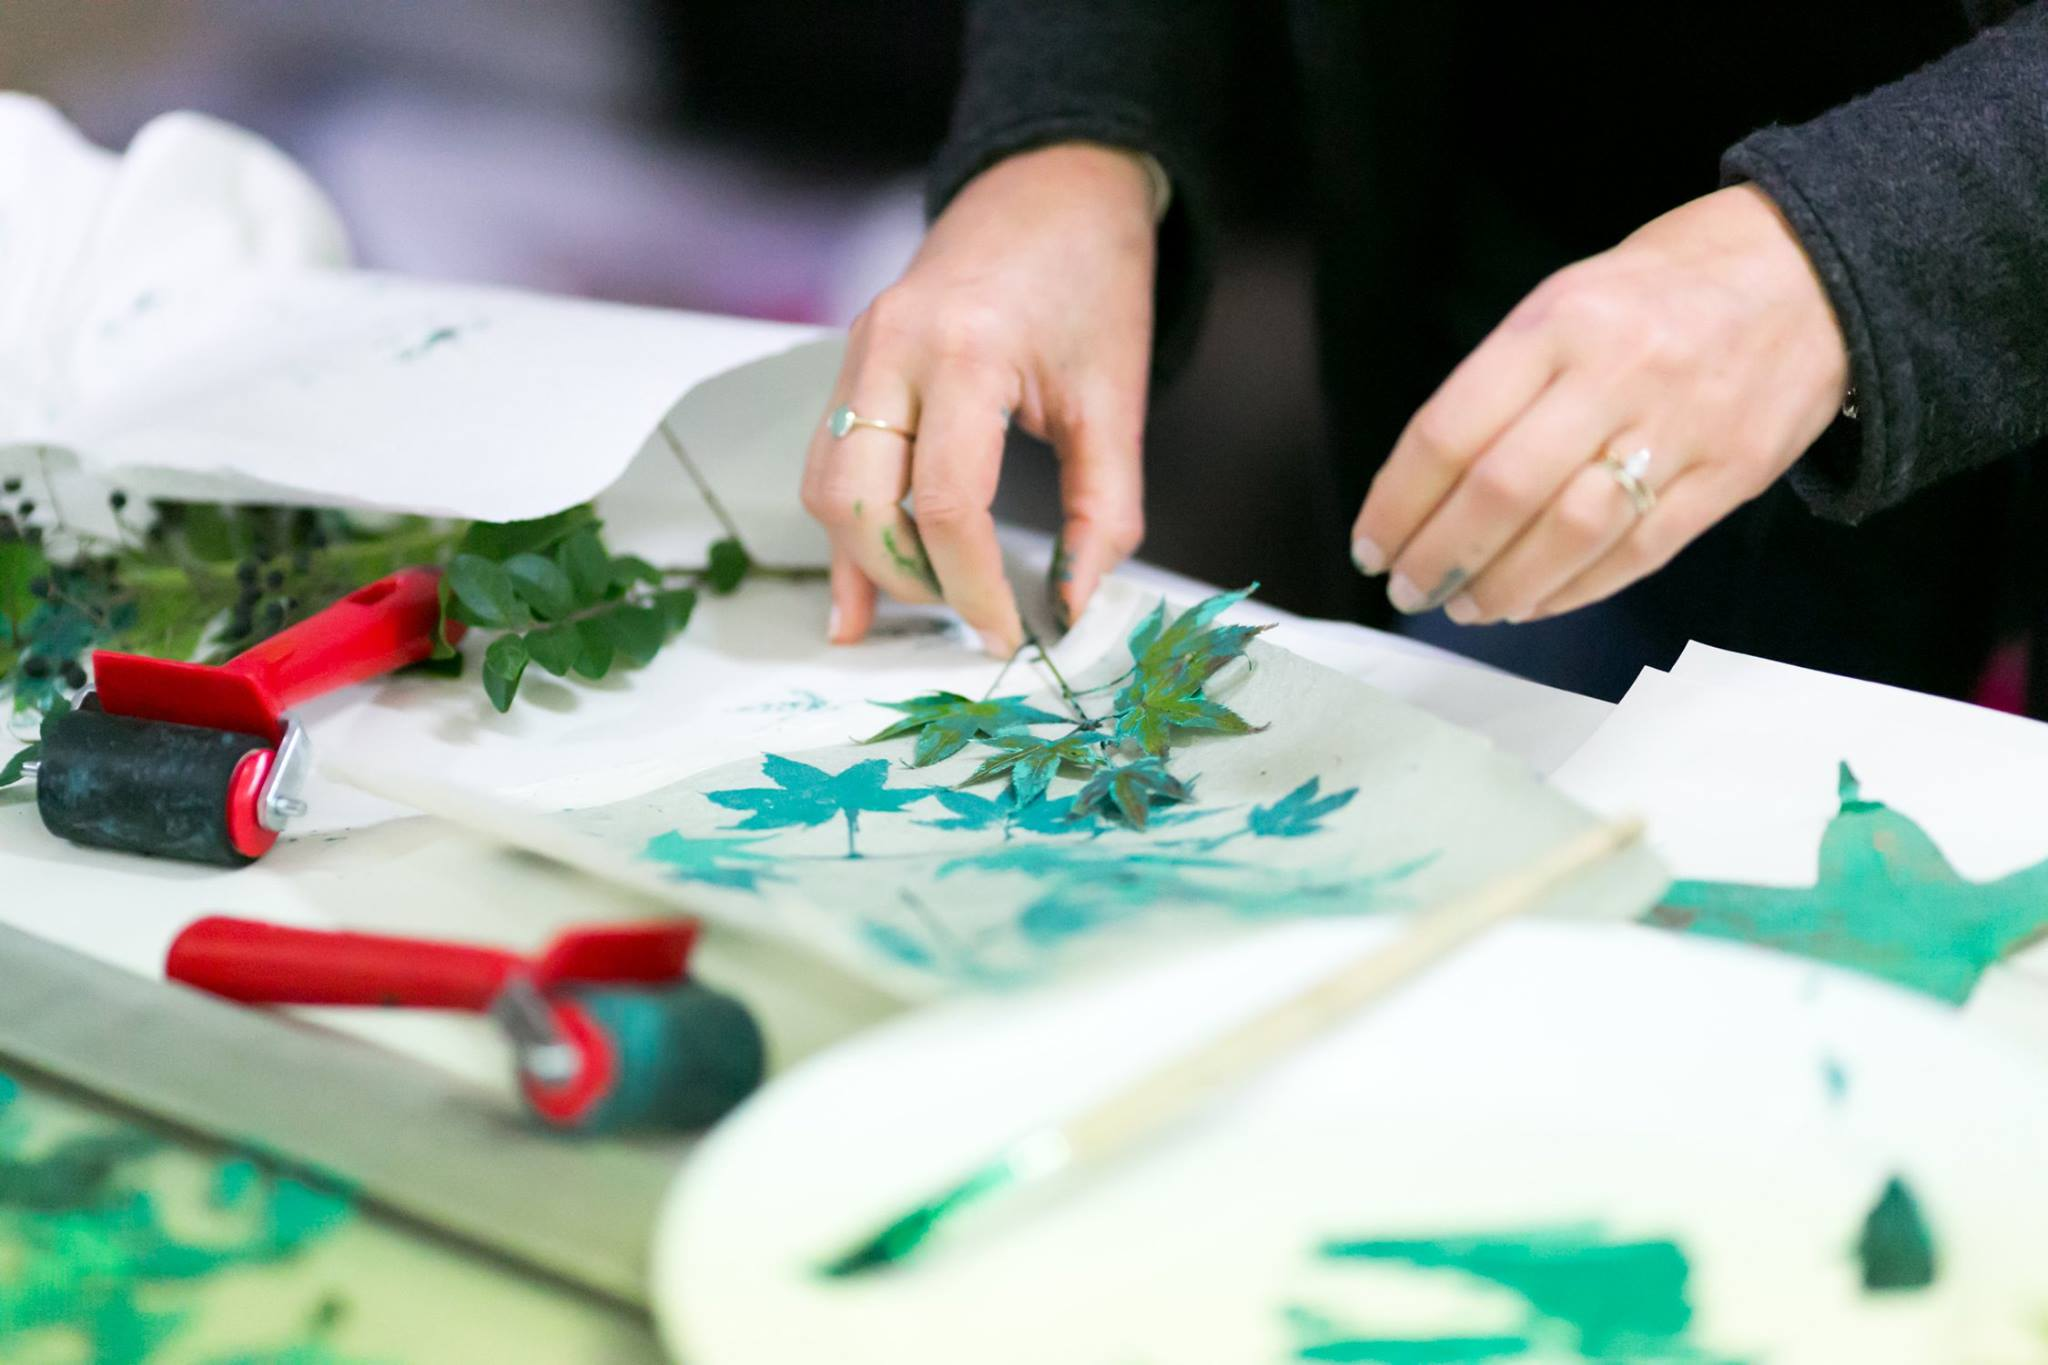 Printing leaves in the creative workshop facilitated by artist Louise Trevitt